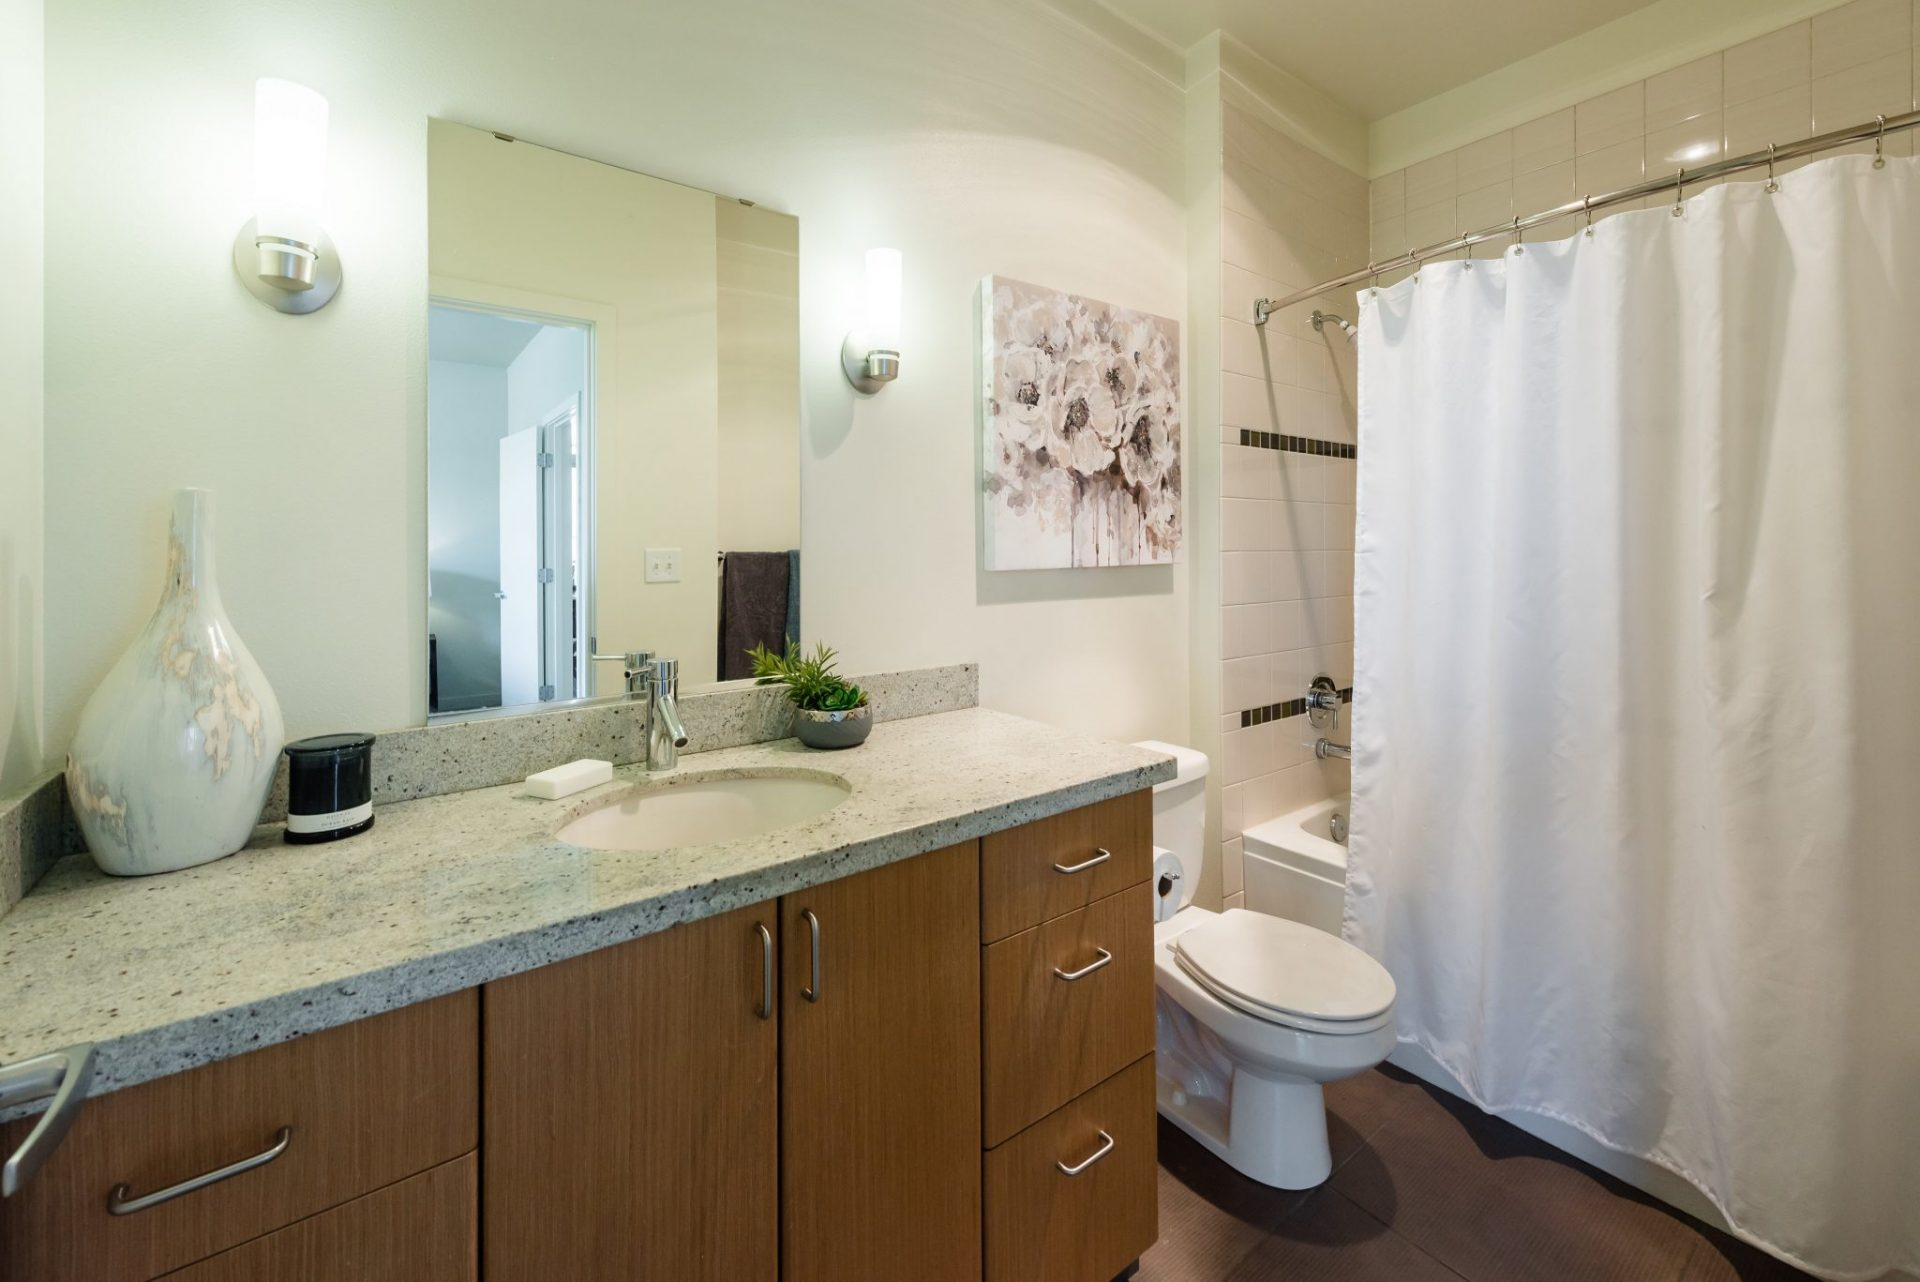 Spacious Bathroom Layouts At Thornton Place Apartments In Seattle, WA